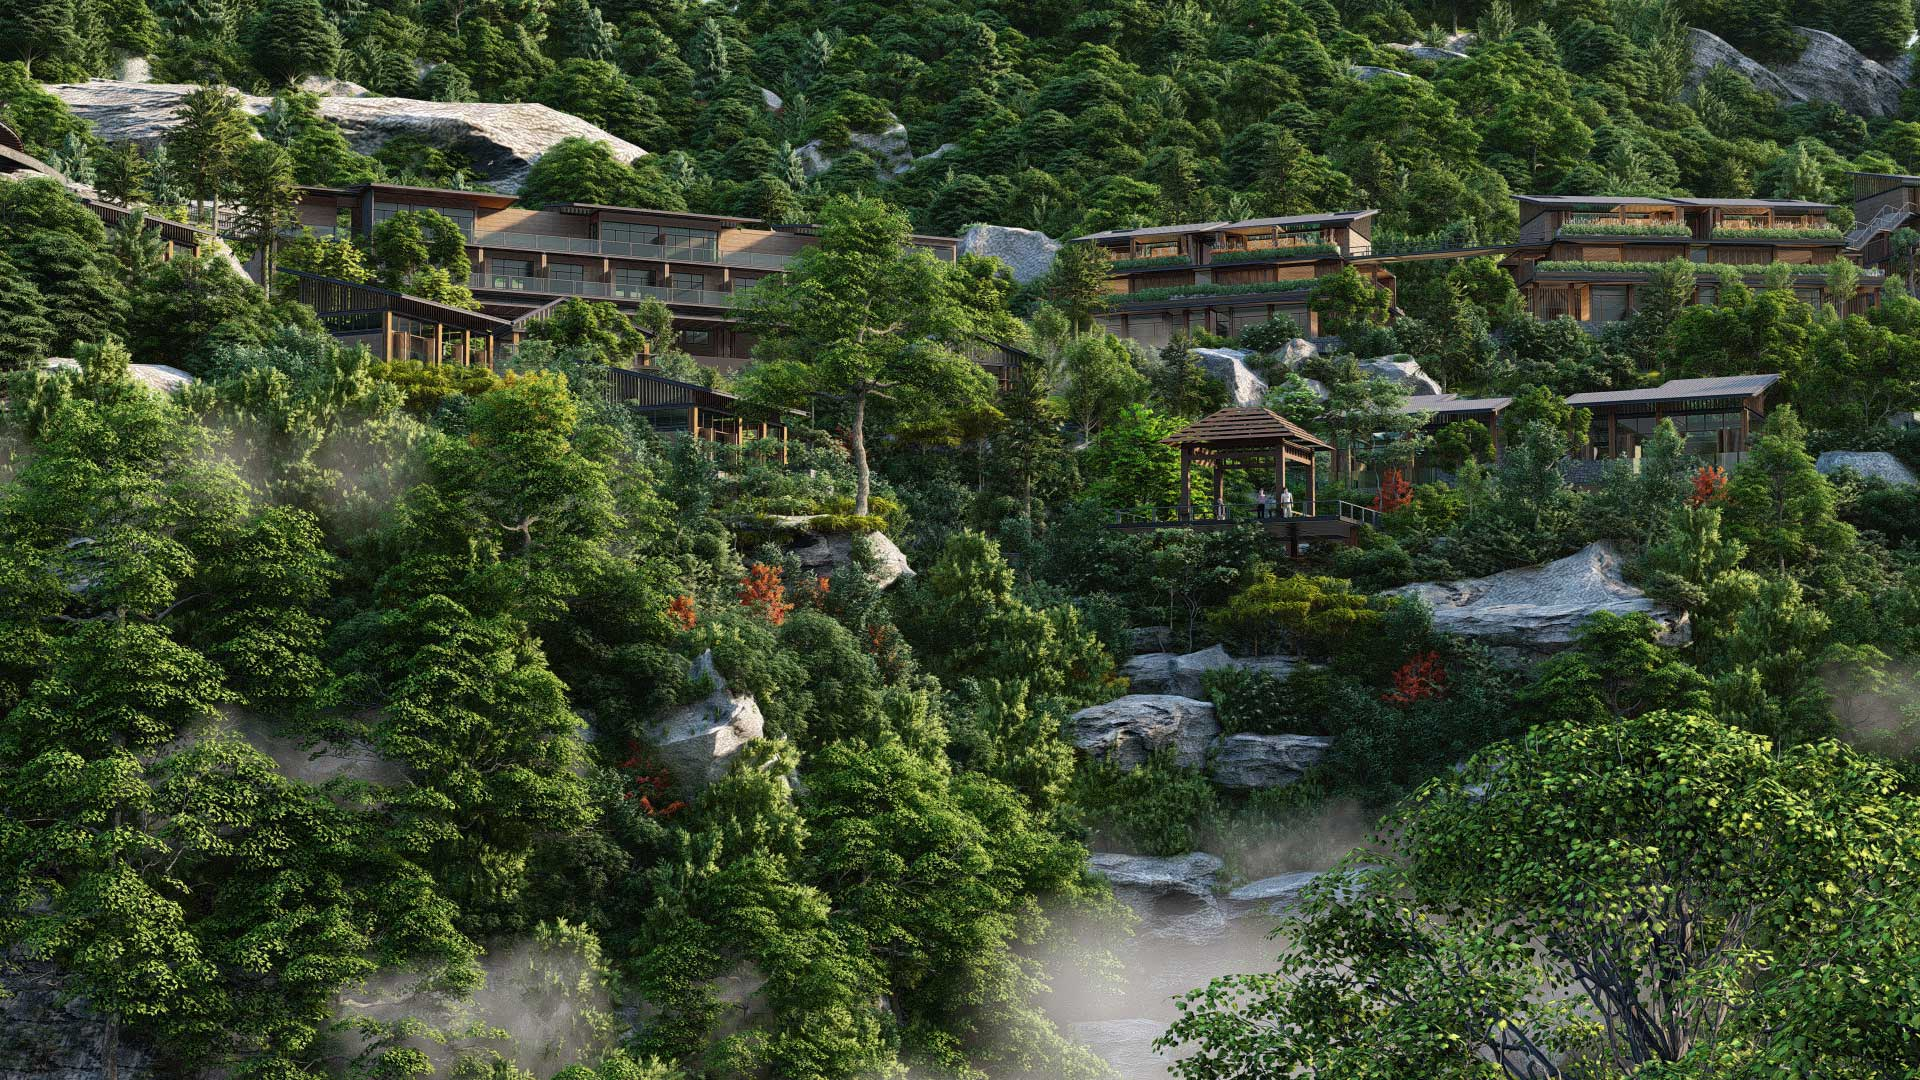 Houses on the hillside in nature